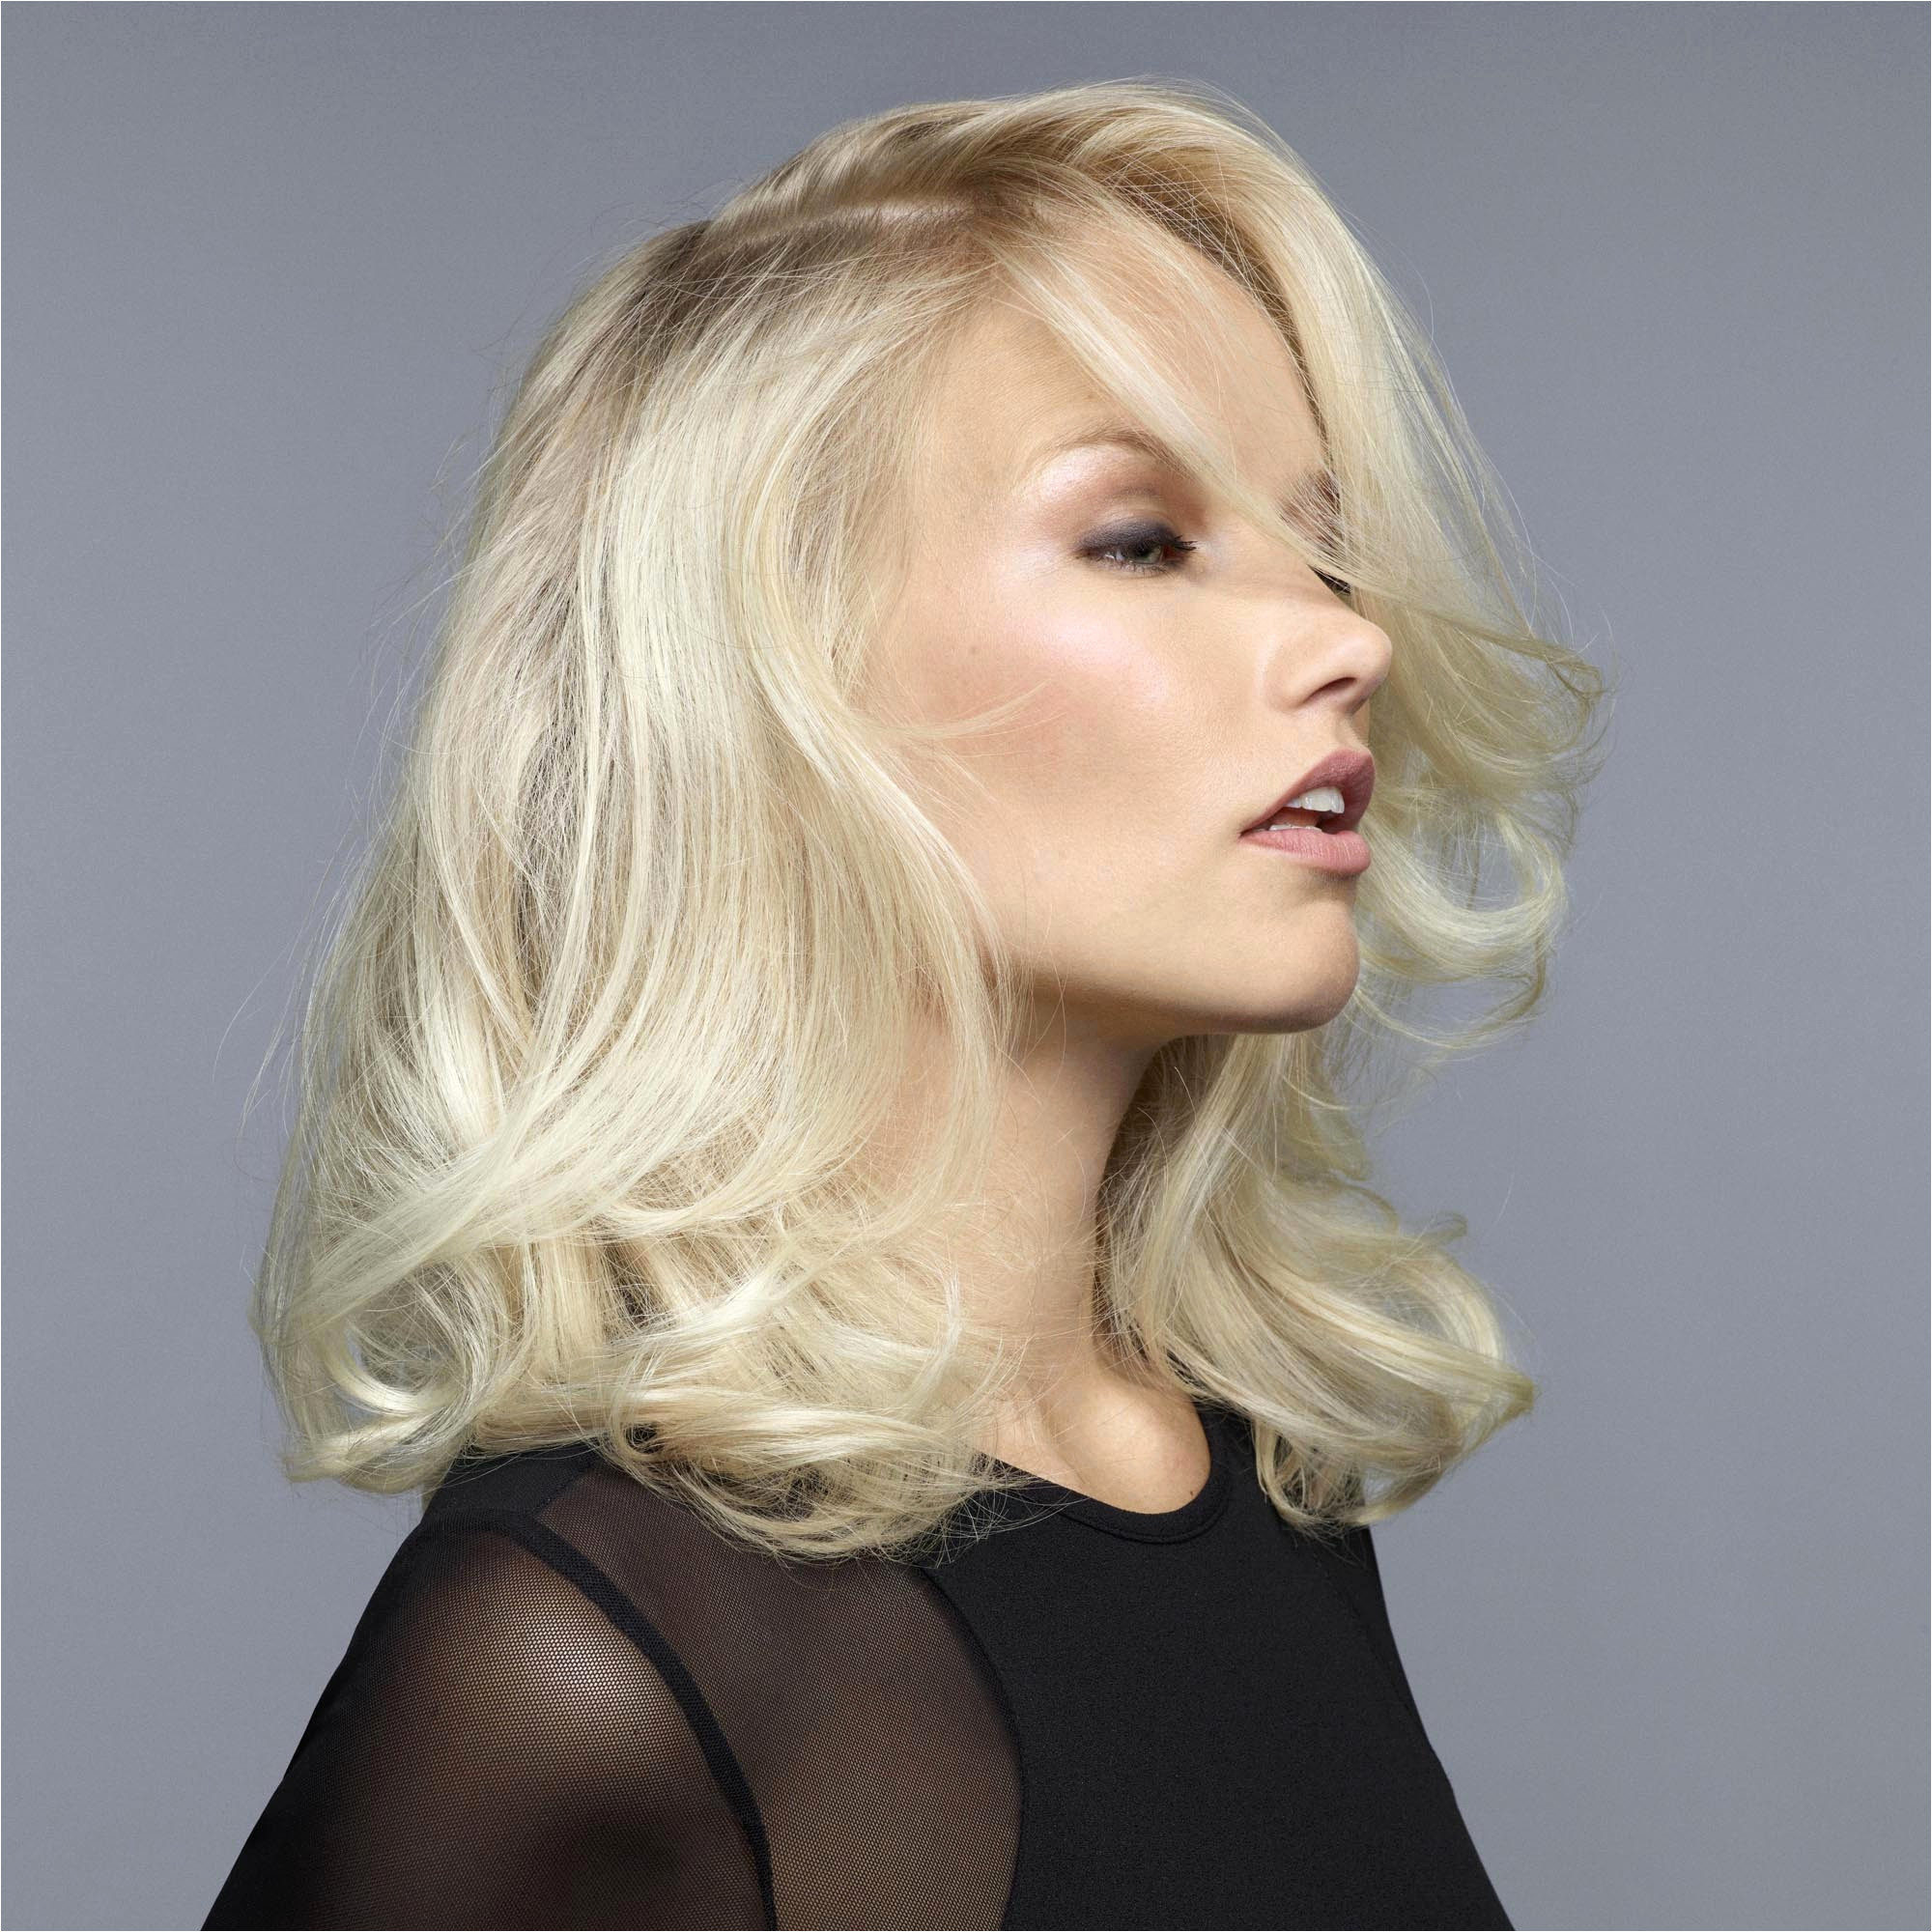 Cute Hairstyles for Girls with Straight Hair New Extraordinary Hairstyles for Men Luxury Haircuts 0d Brassy